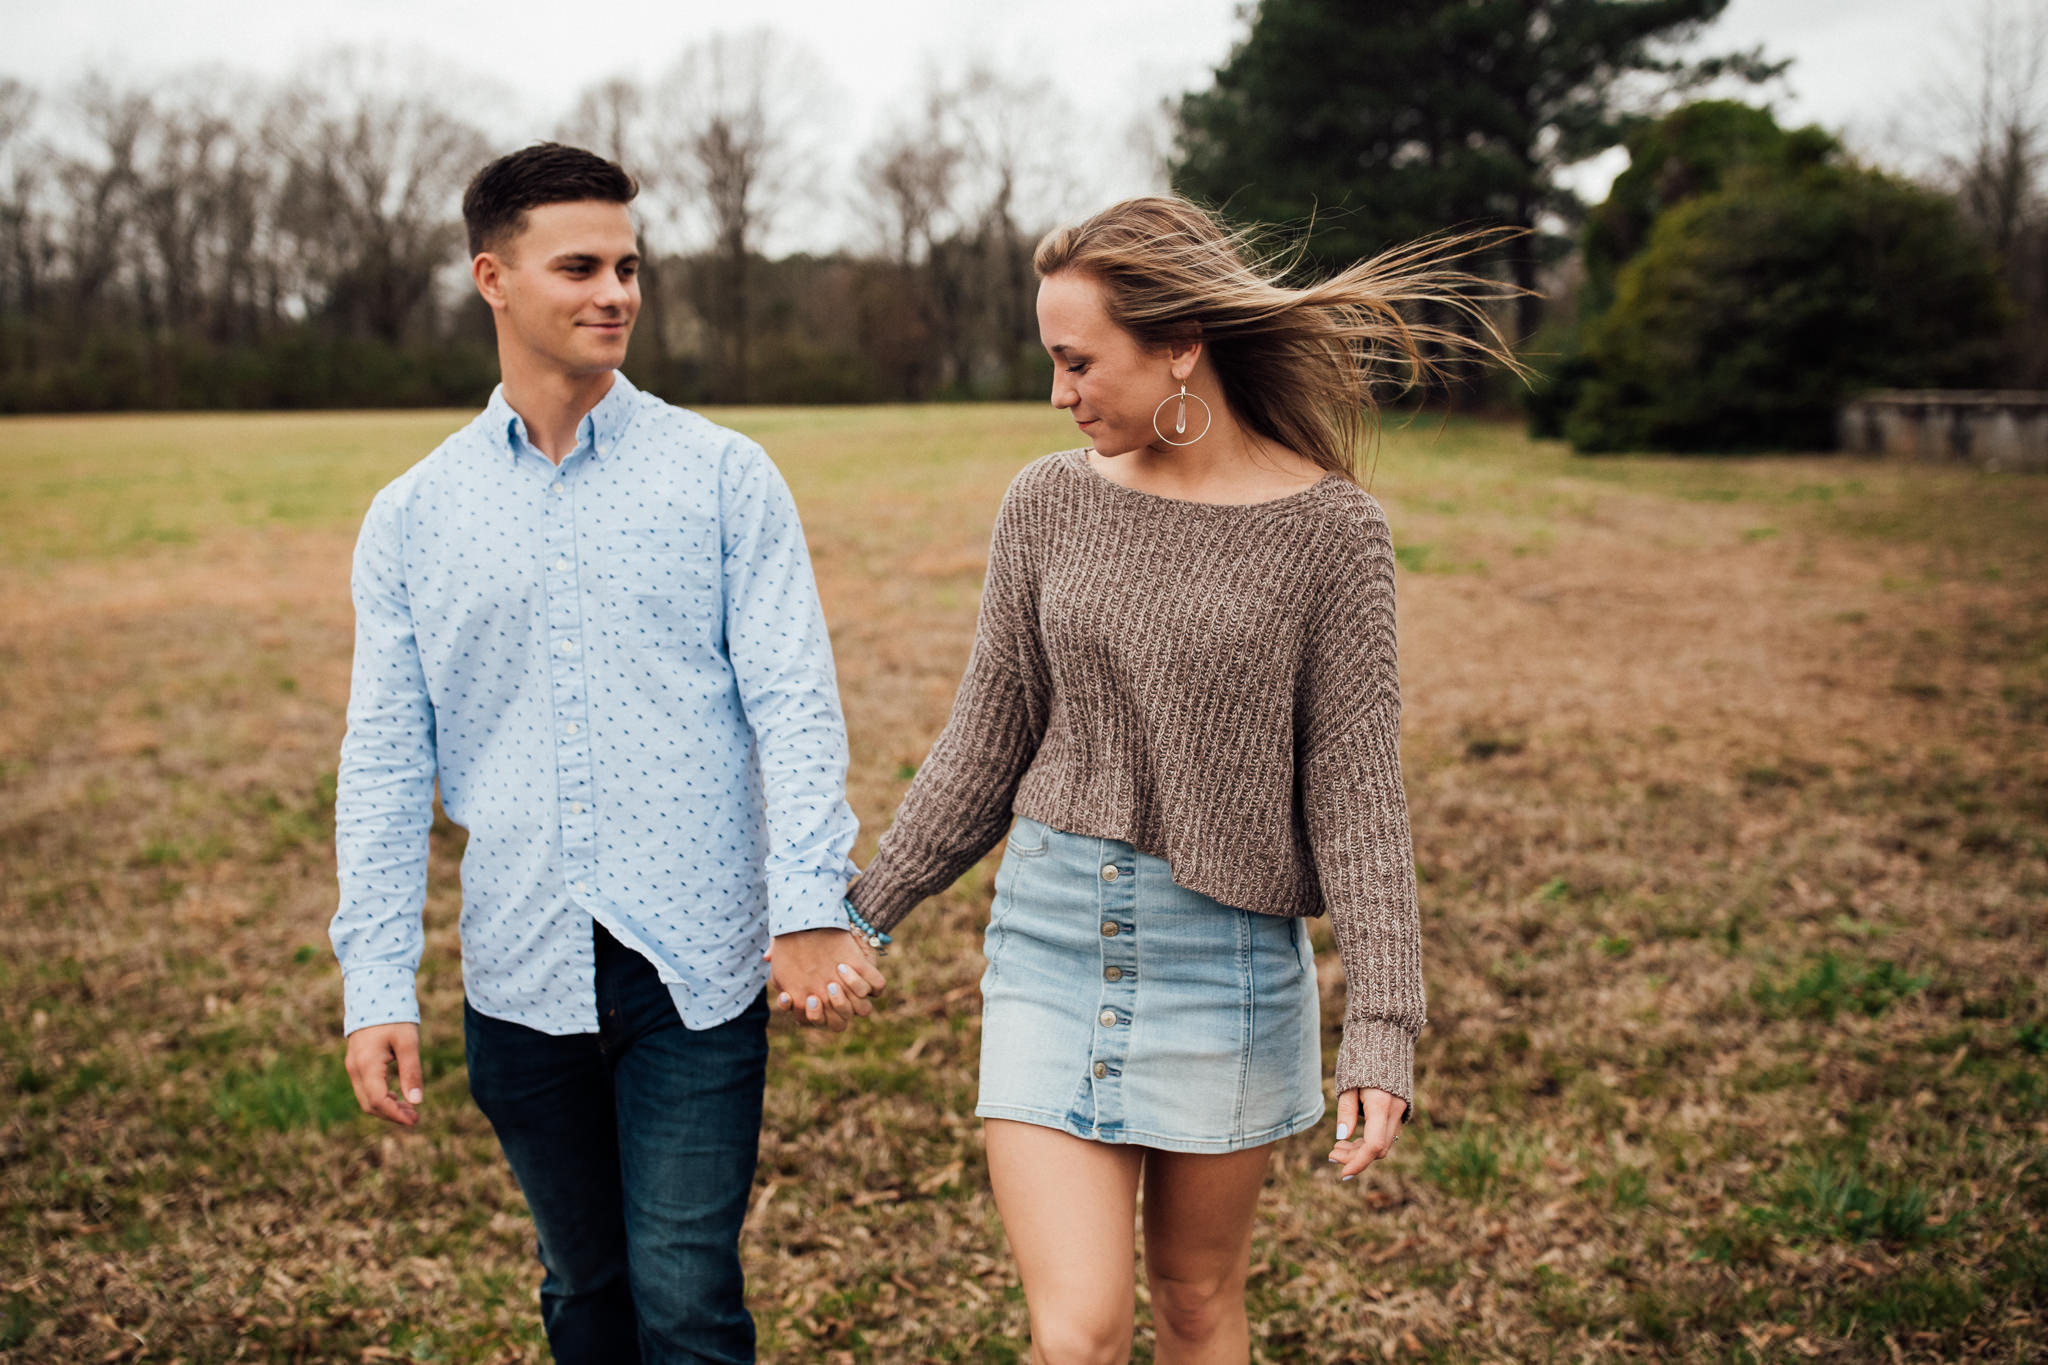 memphis-engagement-photographer-thewarmtharoundyou-greenhouse-engagement-pictures (64 of 118).jpg